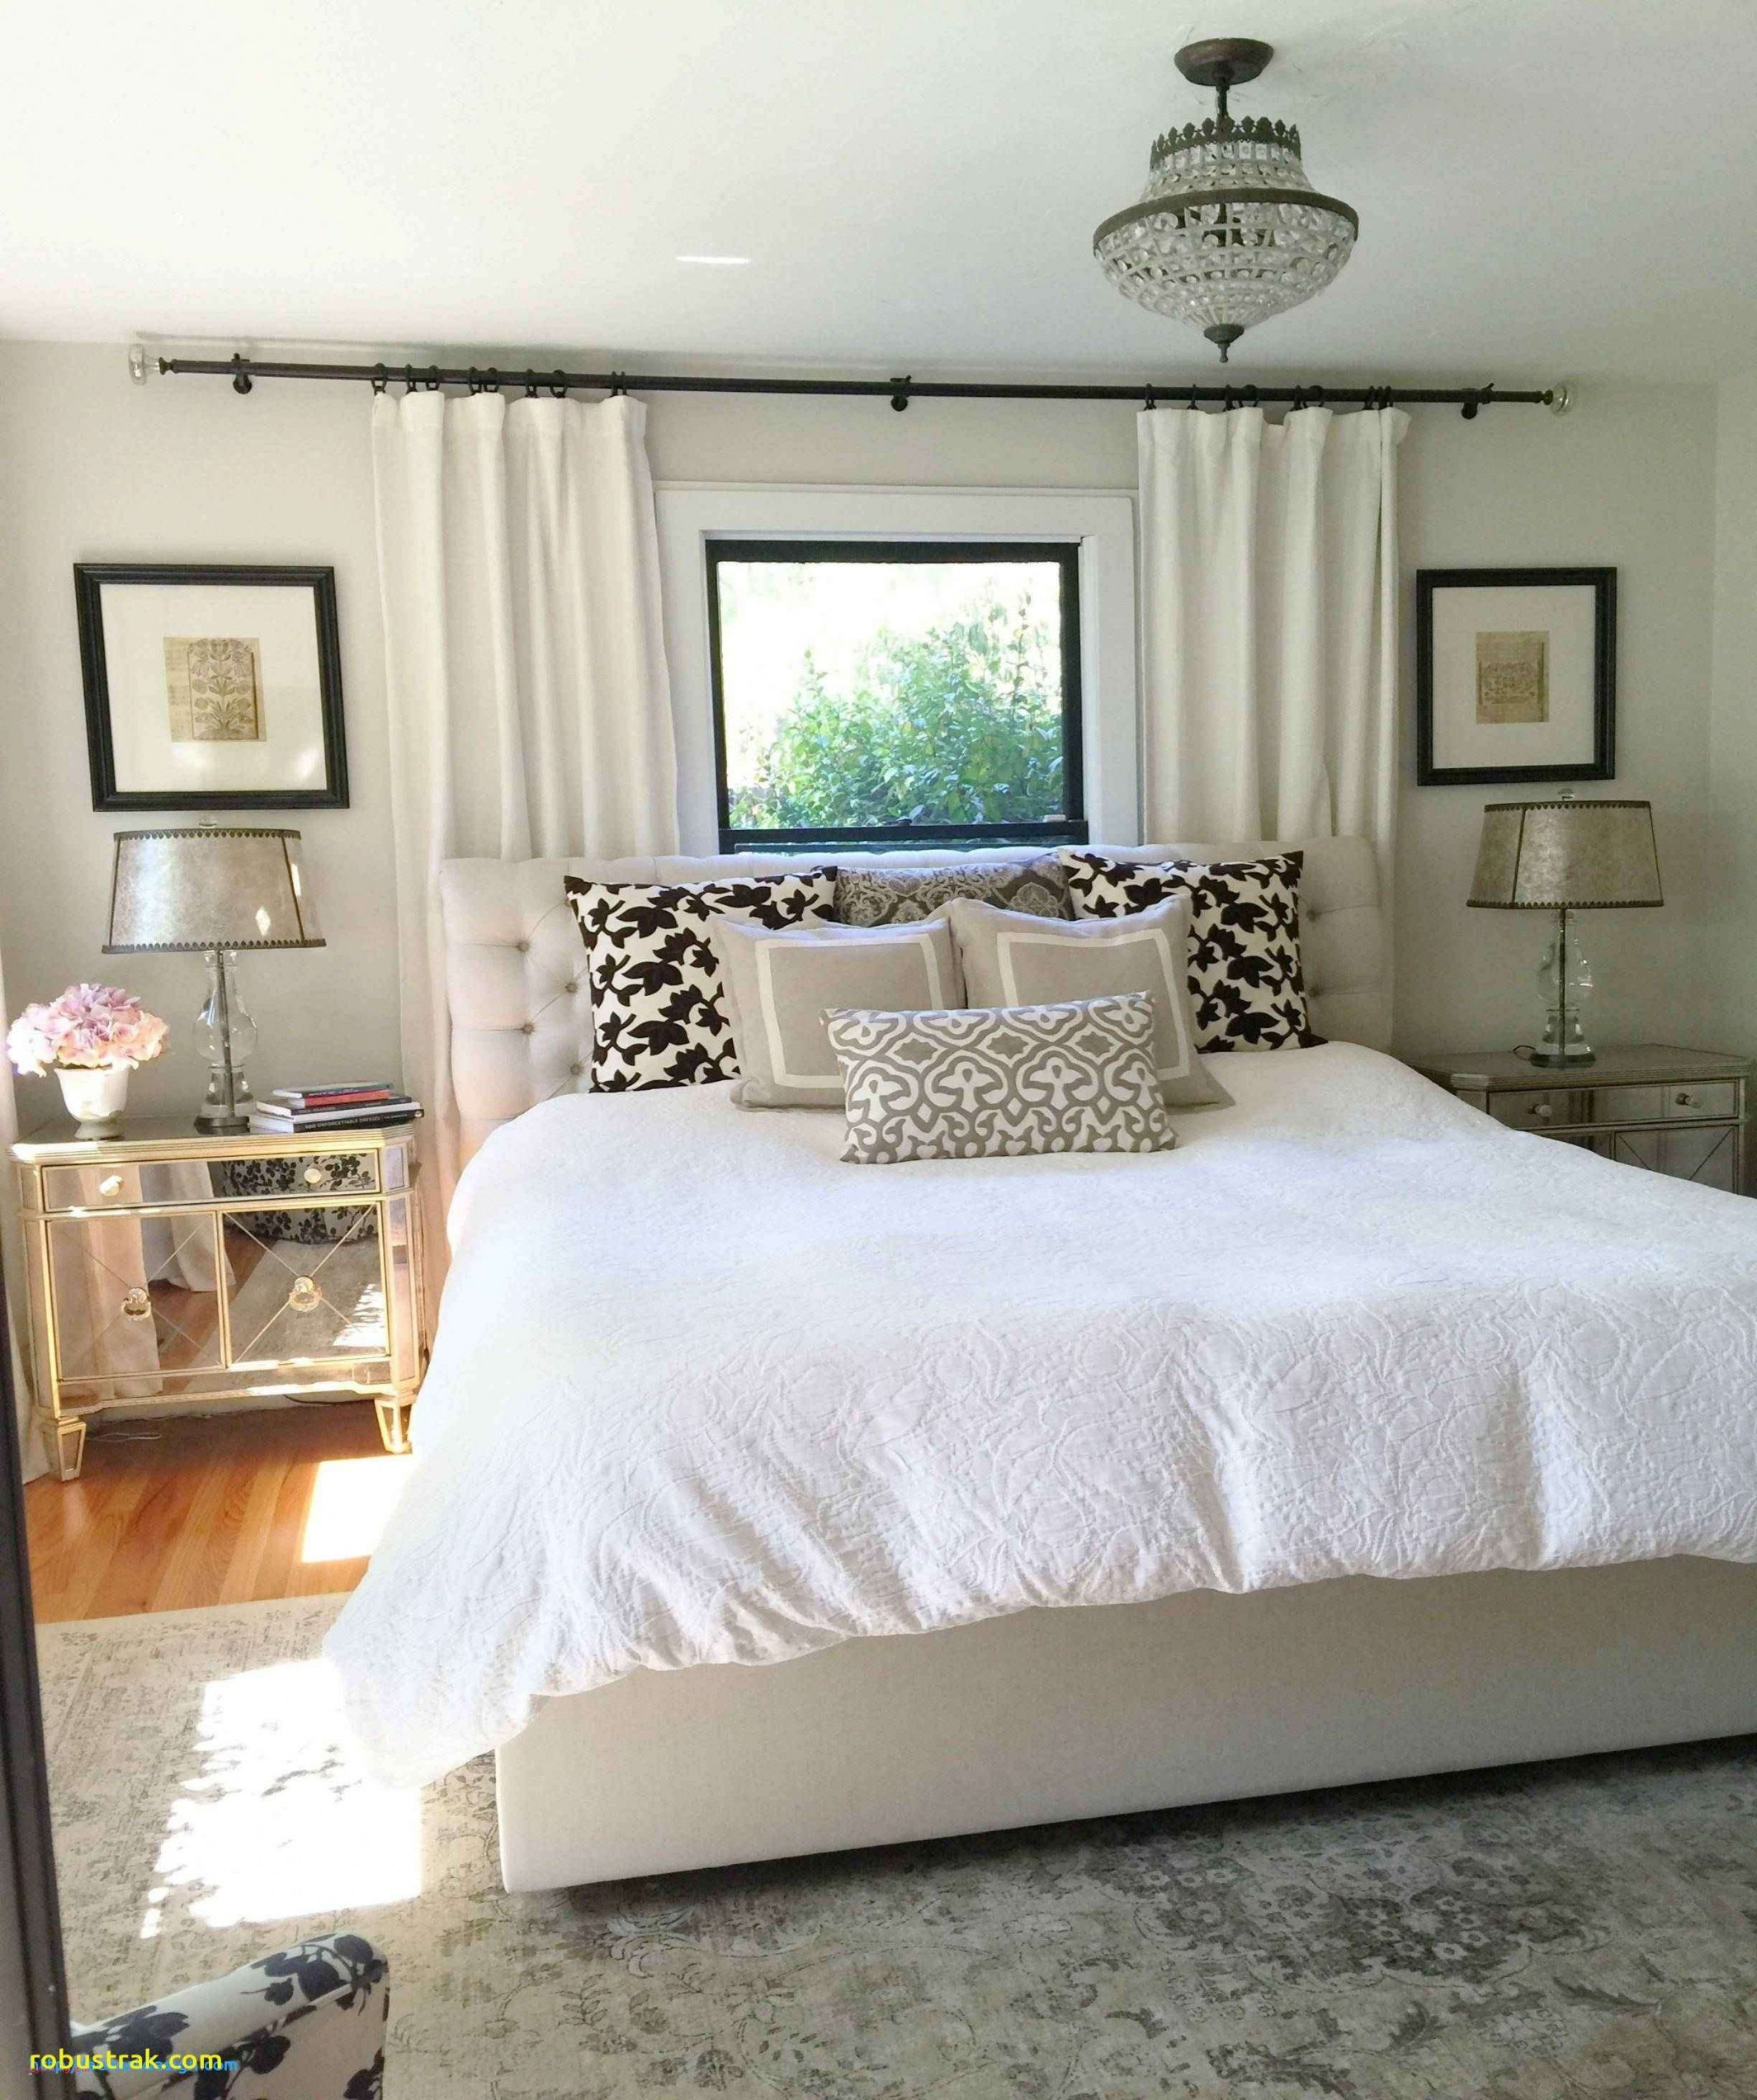 White Master Bedroom Furniture Unique Small Bedroom Inspo White Ikea Bedroom Furniture Hemnes Bed